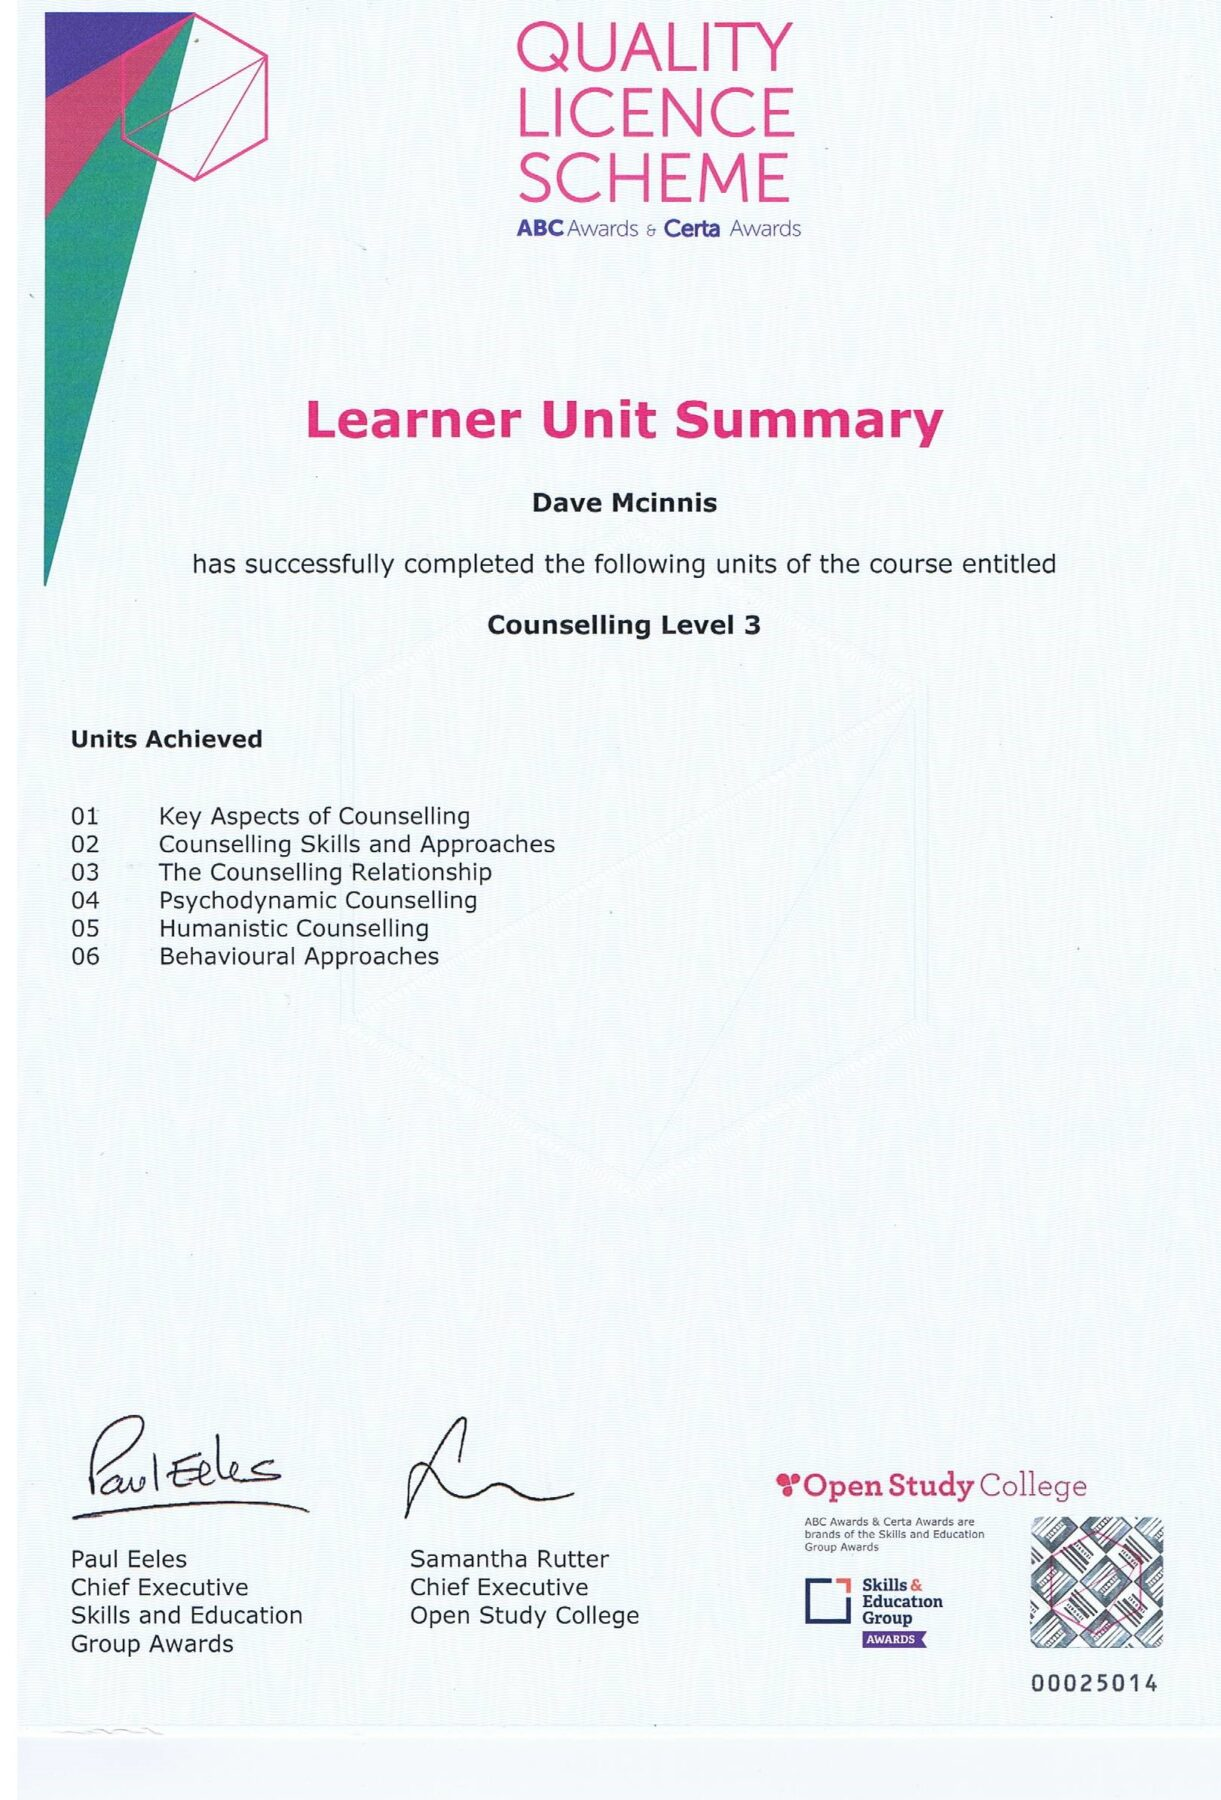 Learner Unit Summary, Counselling Level 3